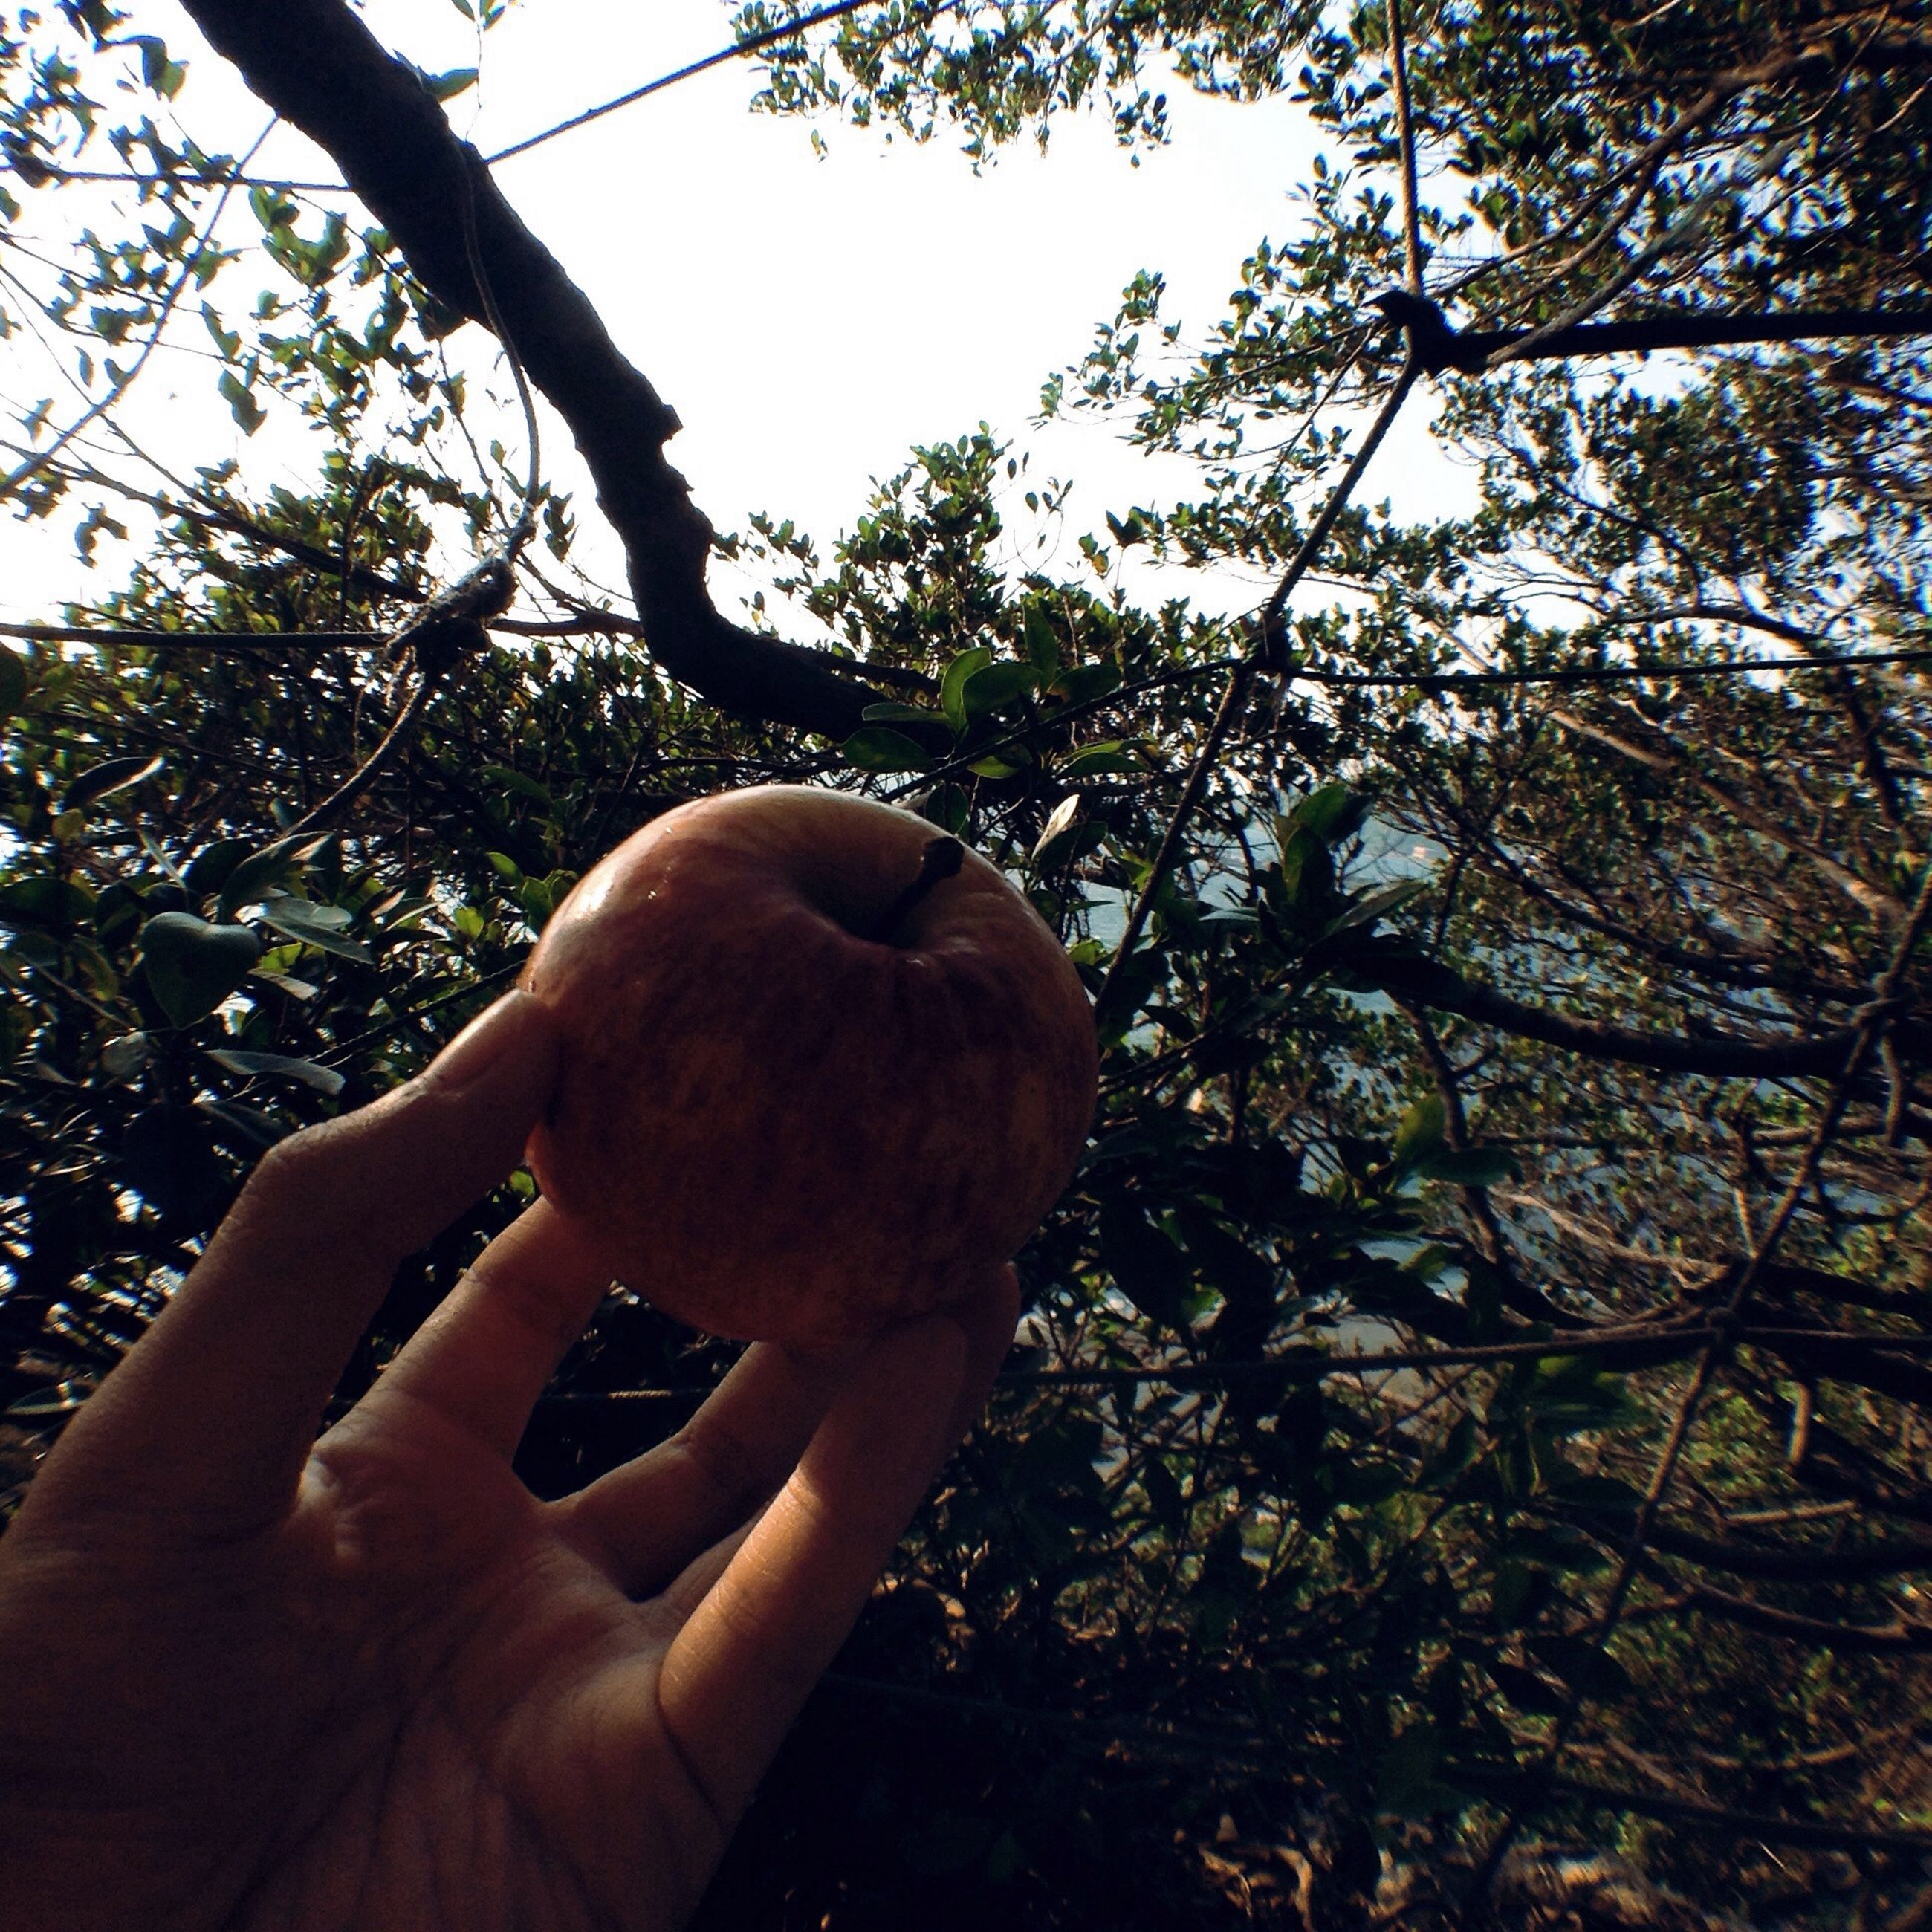 tree, branch, person, low angle view, holding, growth, part of, cropped, nature, tree trunk, human finger, close-up, day, outdoors, food and drink, sunlight, lifestyles